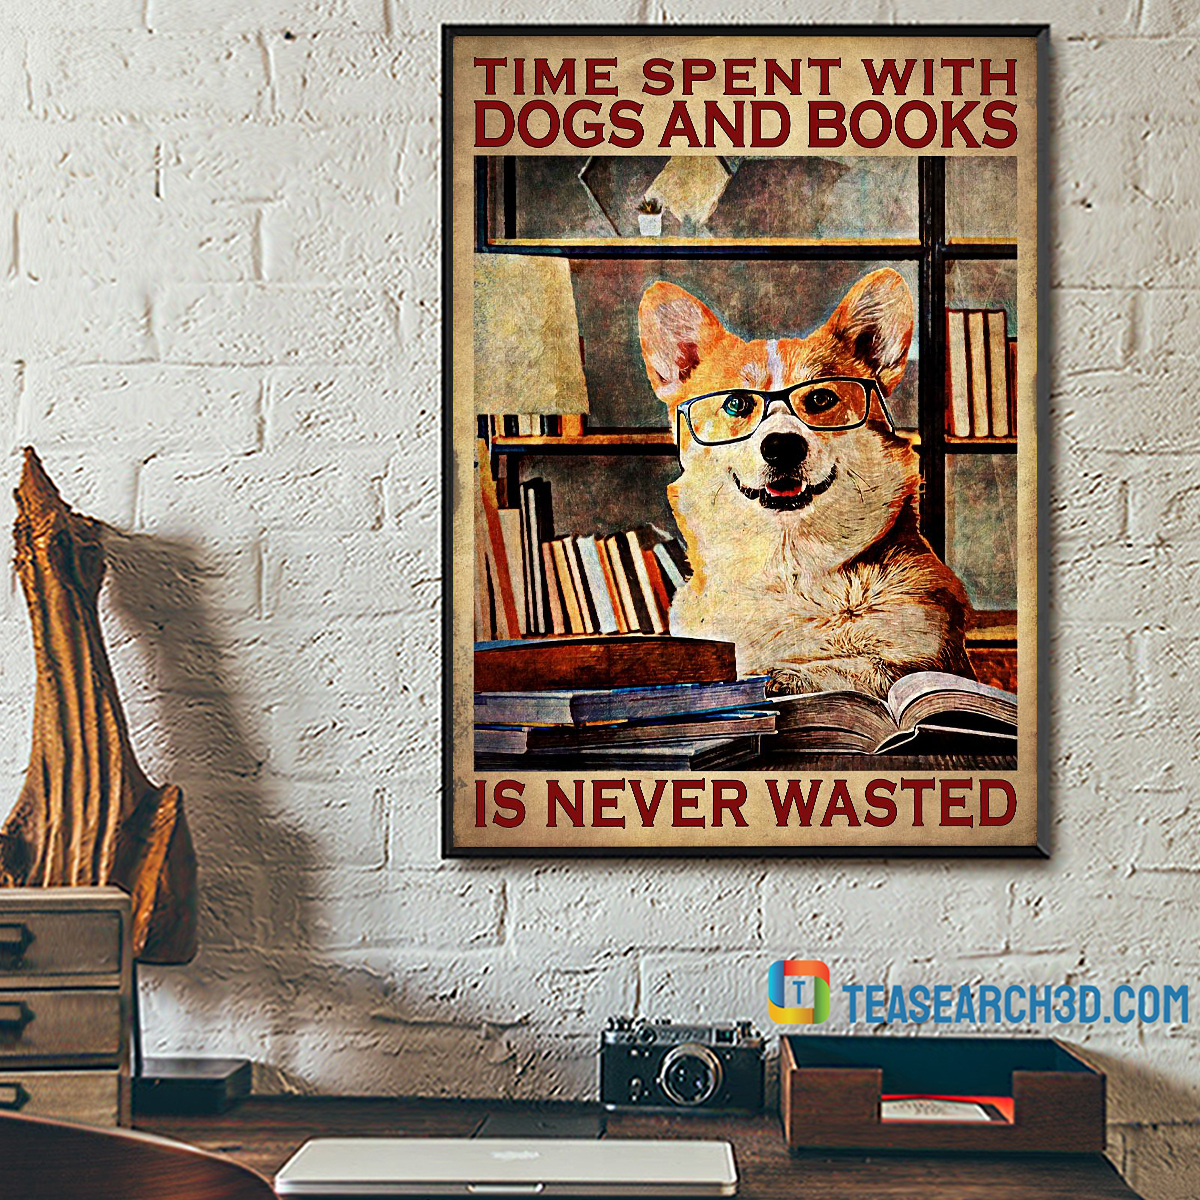 Corgi Time spent with dogs and books is never wasterd poster A2